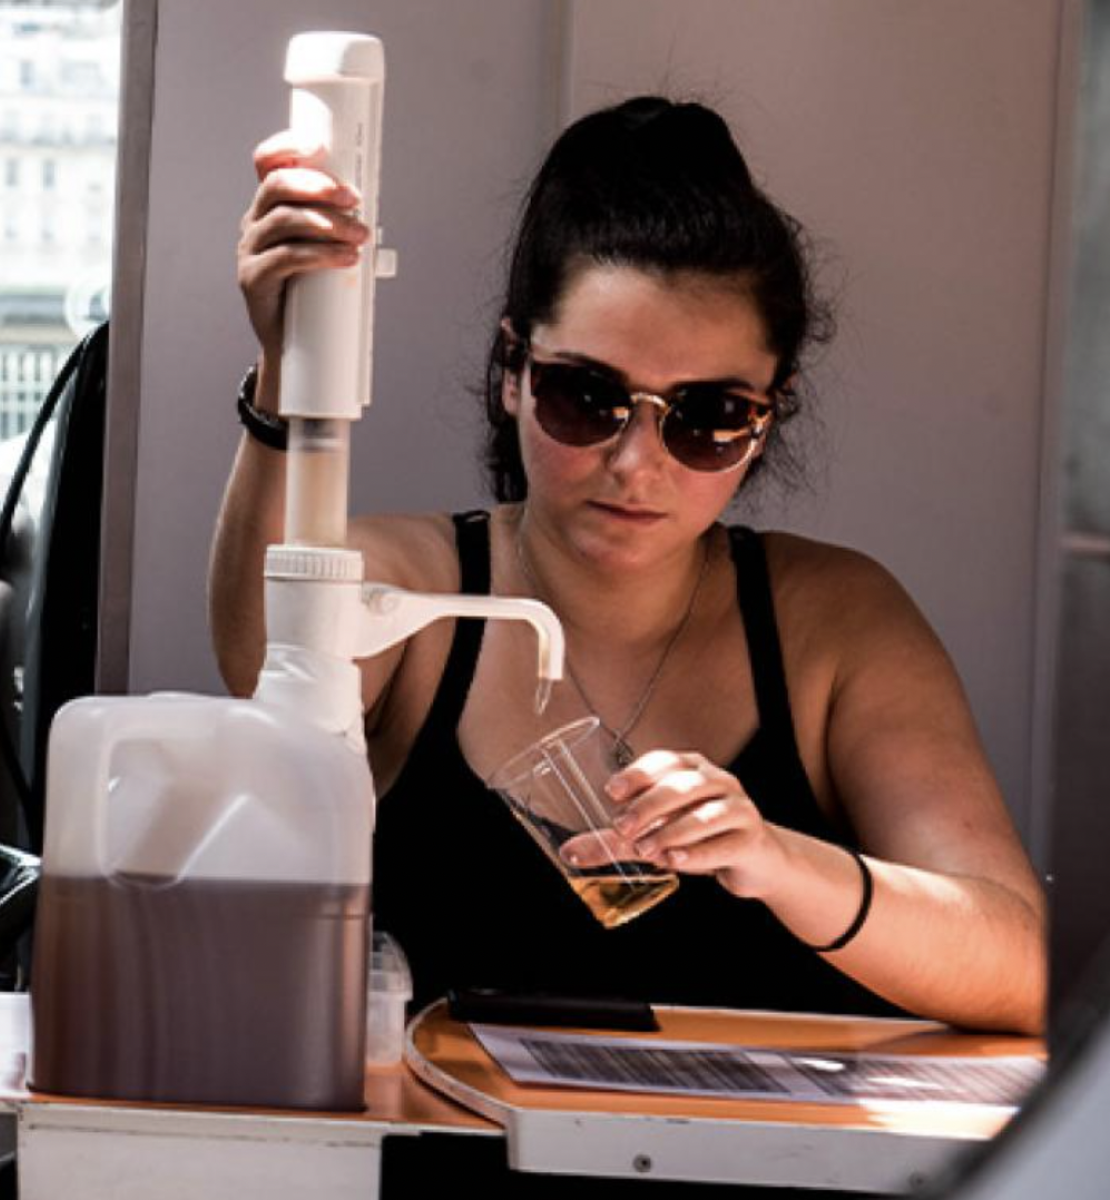 A woman is sitting at a table pouring a brownish-yellow liquid into a cup.